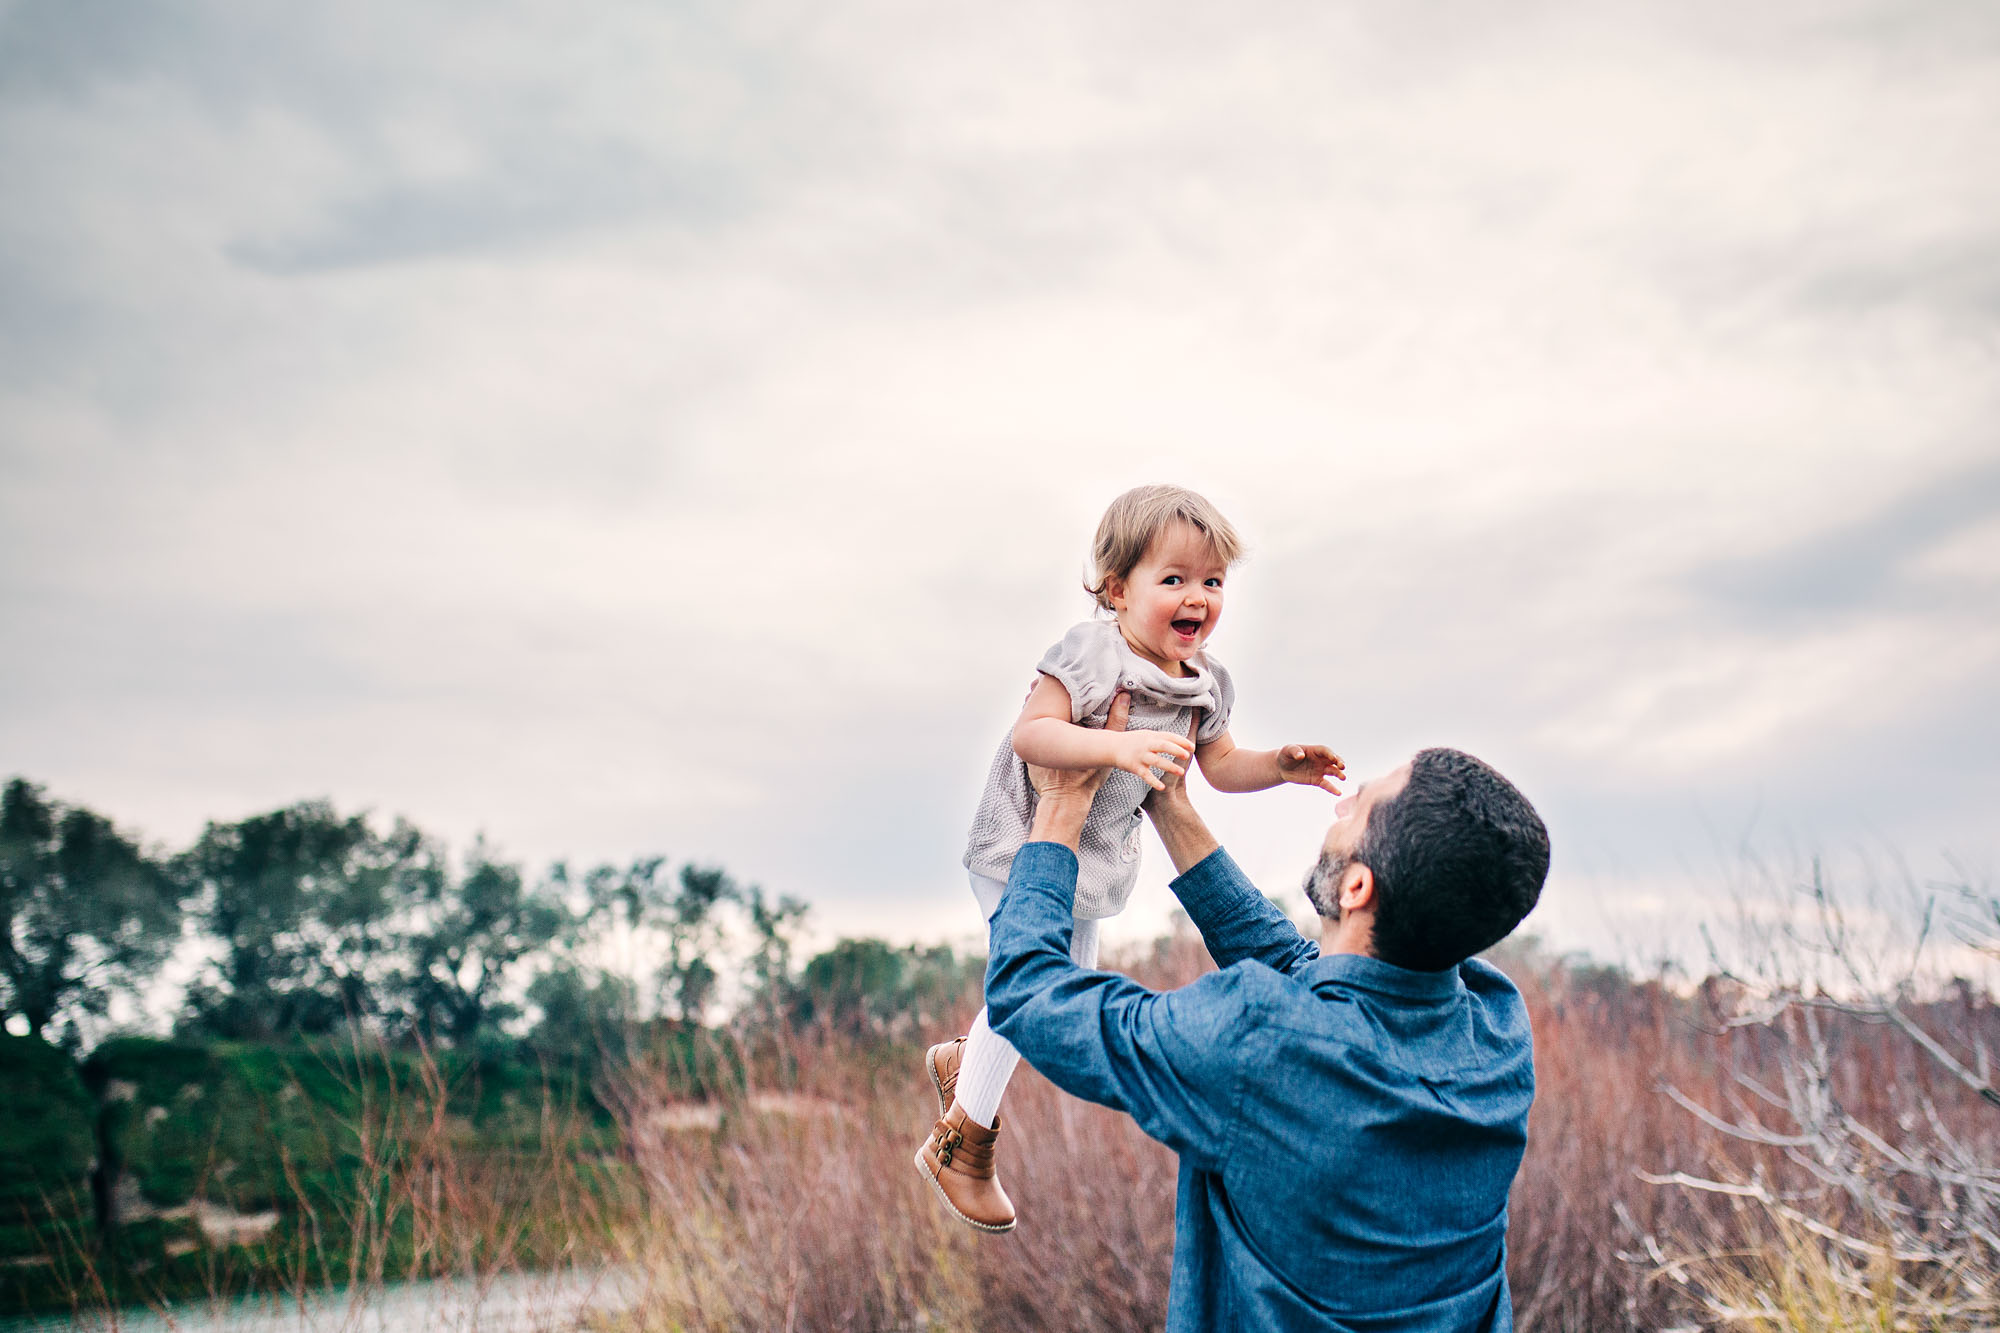 A little girl has fun as her father tosses her in the air during a lifestyle family photo session with Amy Wright, a photographer based in Roseville, California.